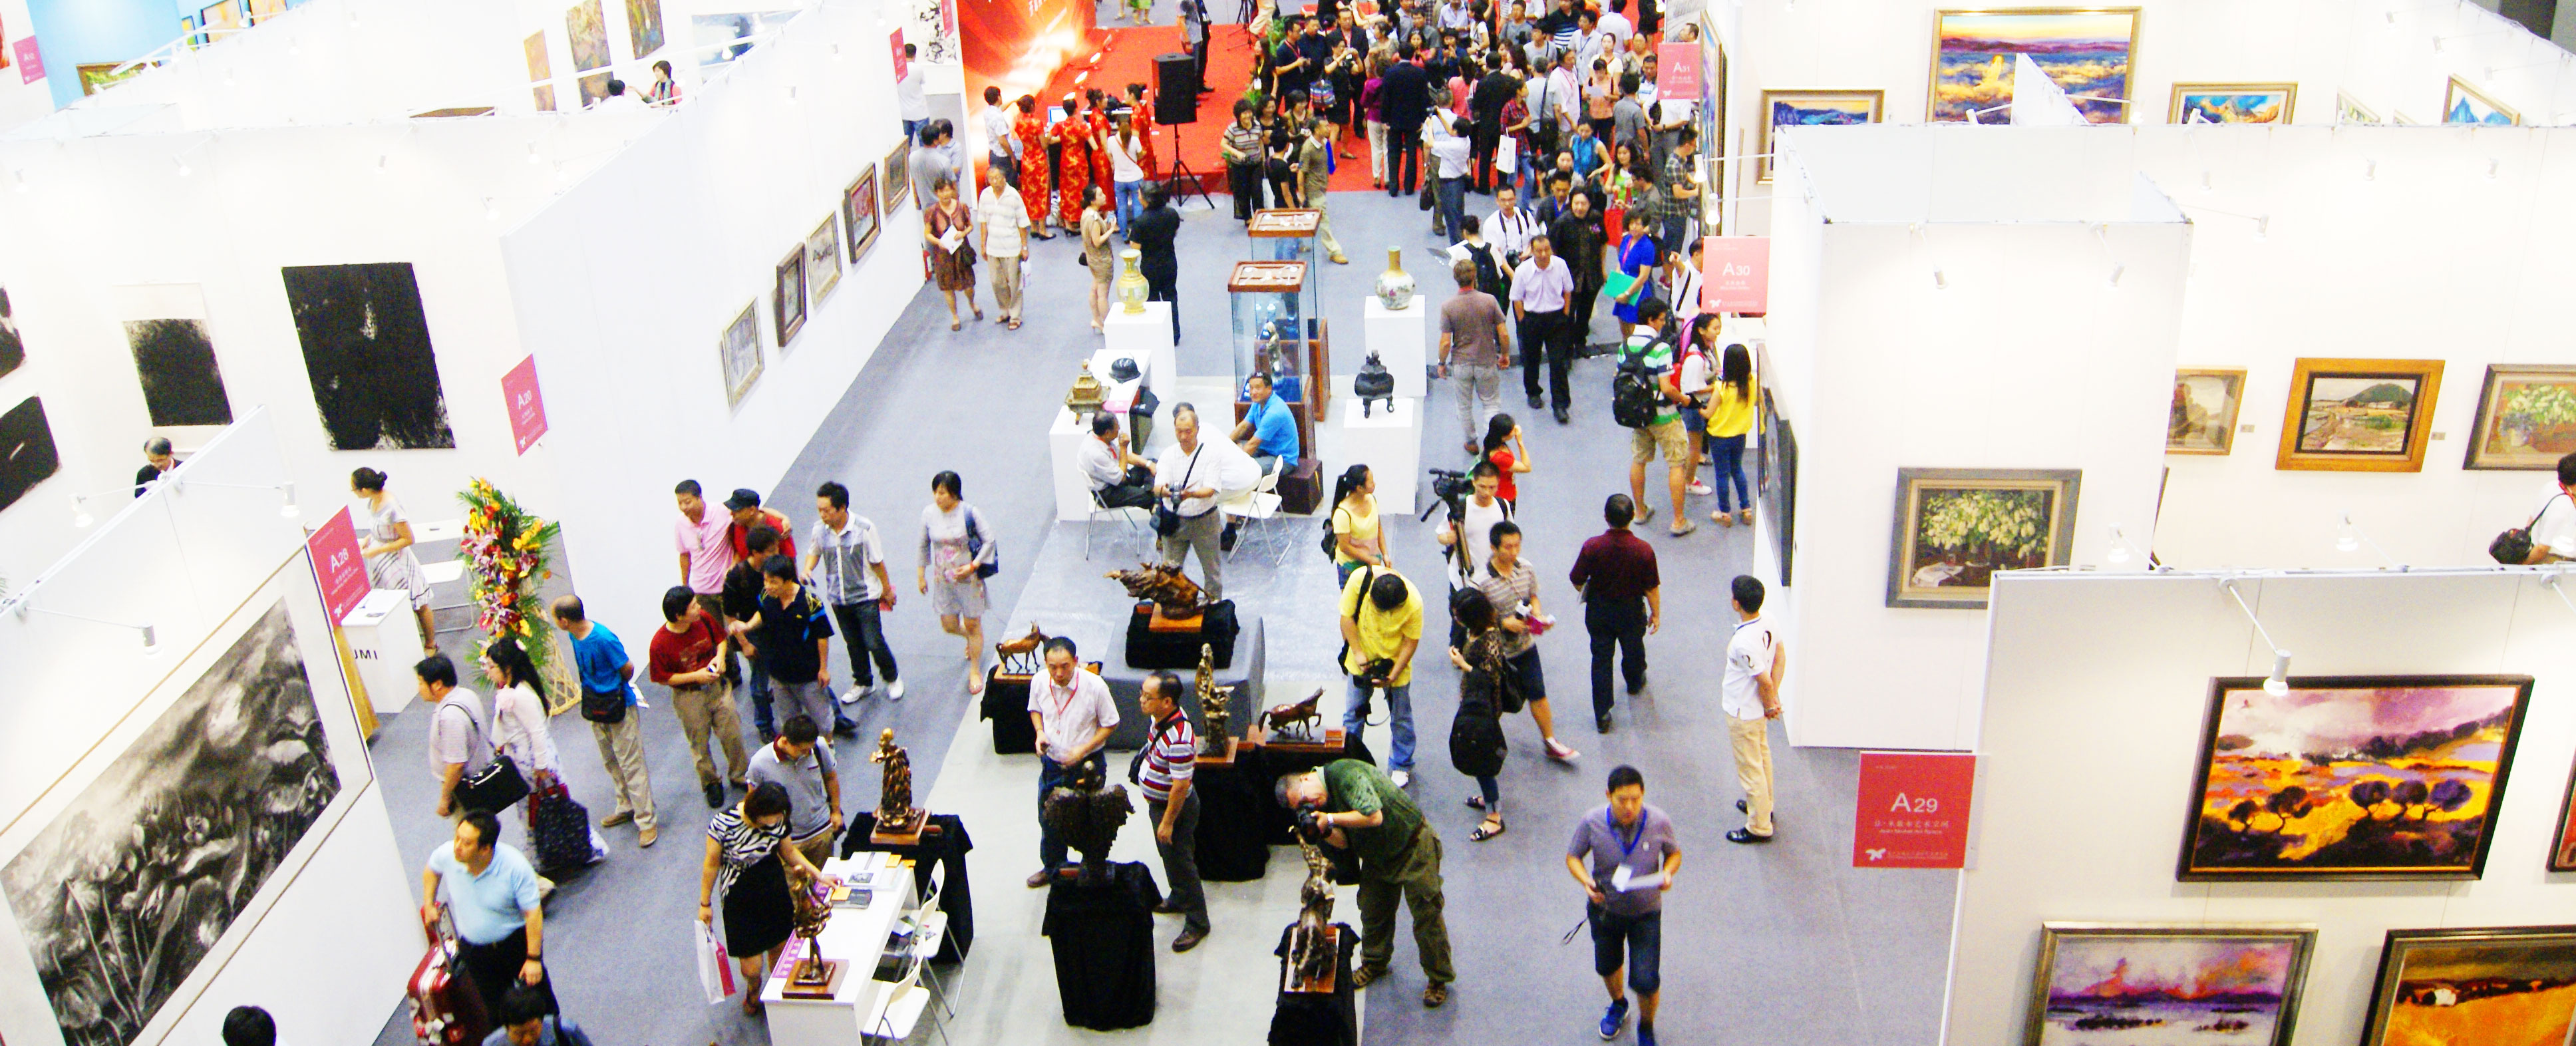 The 15th Beijing international art expo exhibition site